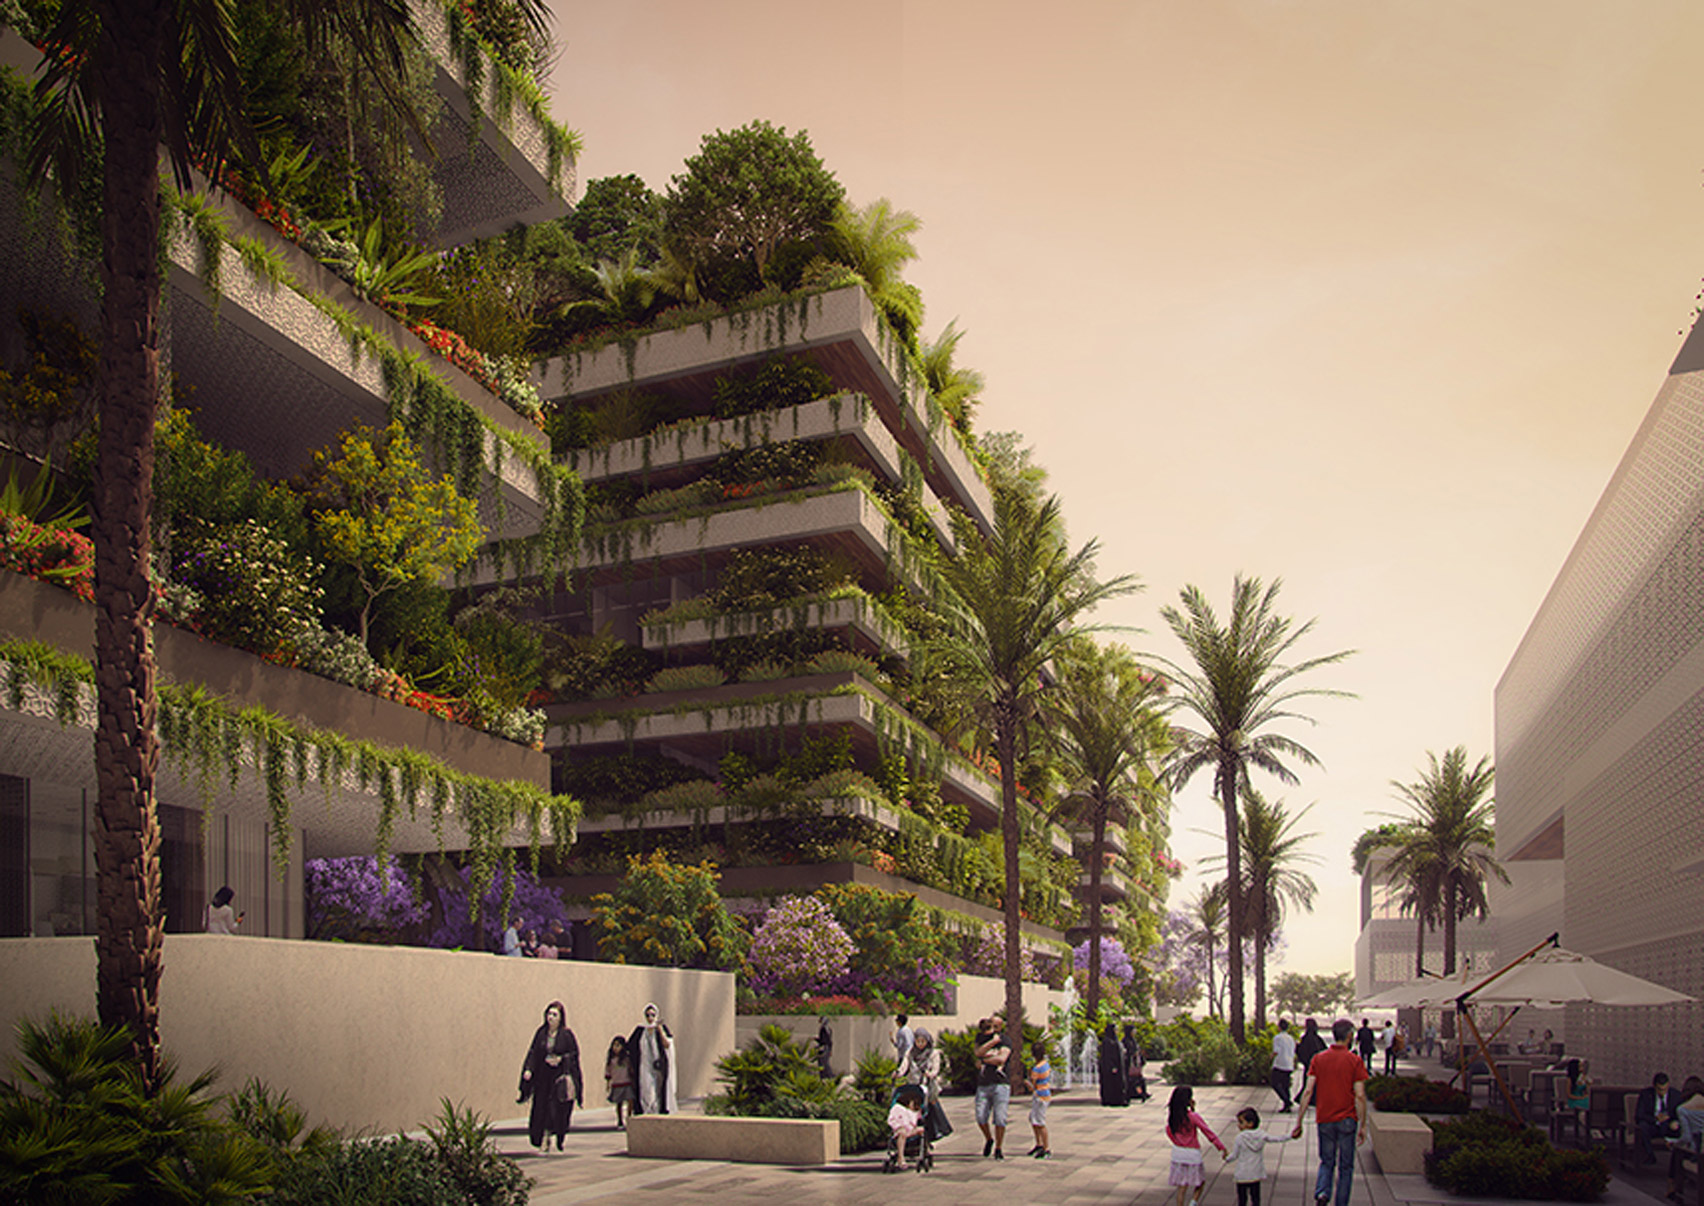 Three cube-shaped vertical forest apartment blocks for Egypt's New Administrative Capital, which is being built to the east of Cairo.